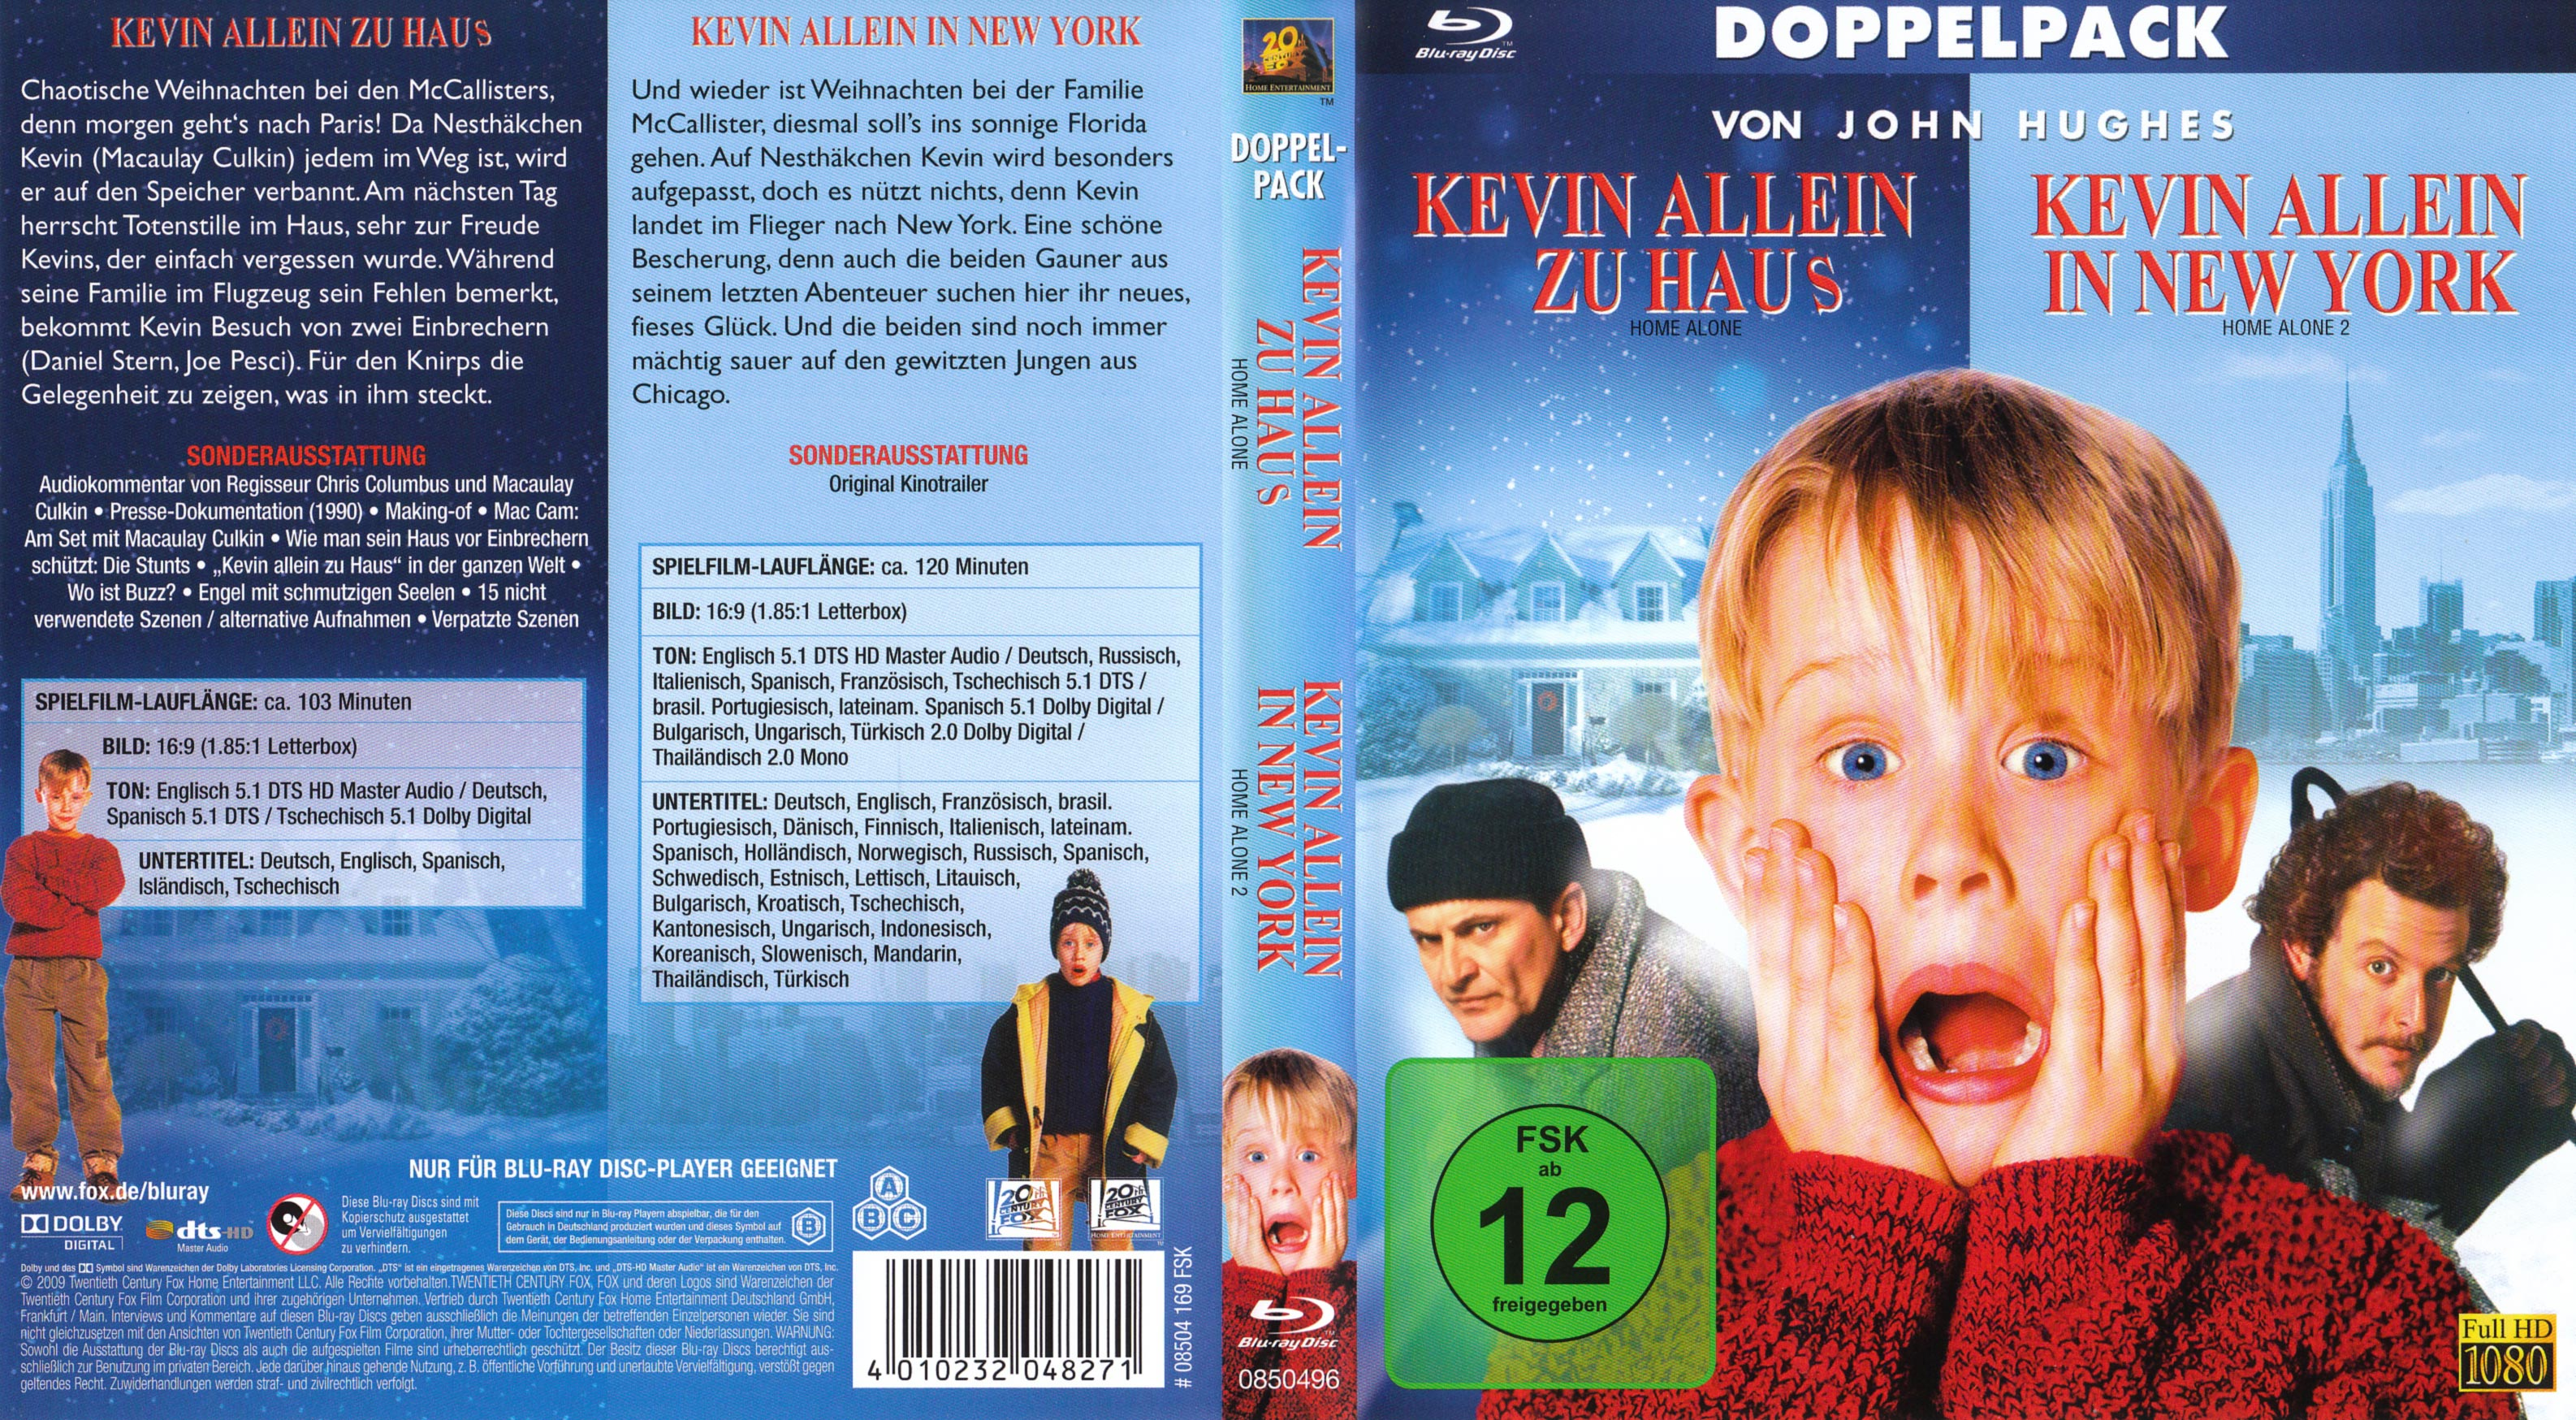 Kevin Allein zu Haus In New York Double Feature blu ray